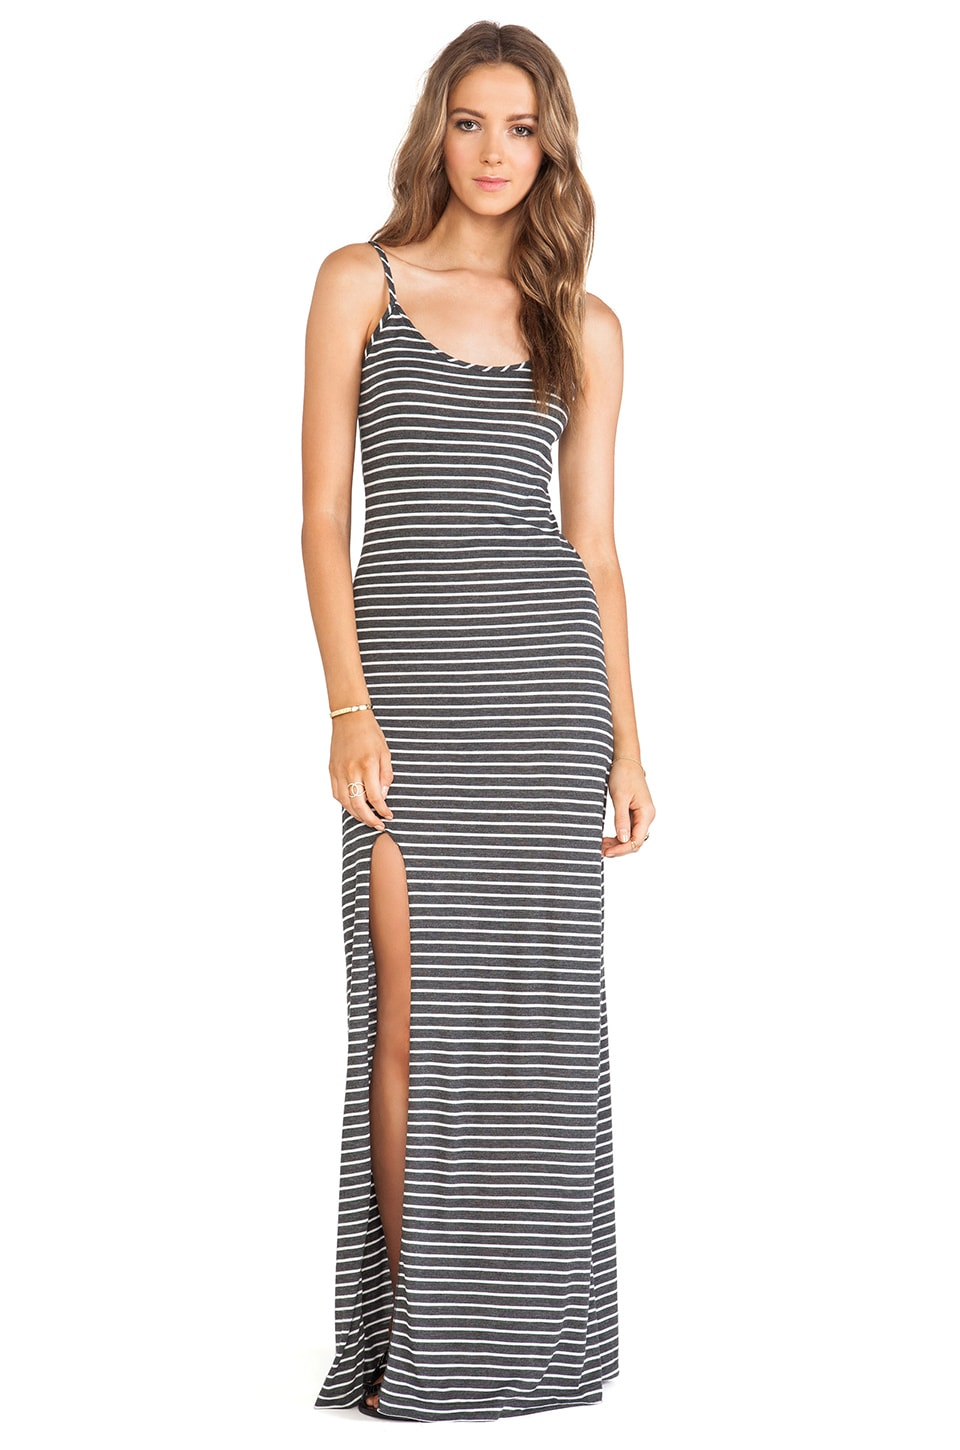 De Lacy DeLacy Anika Maxi Dress in Grey & White